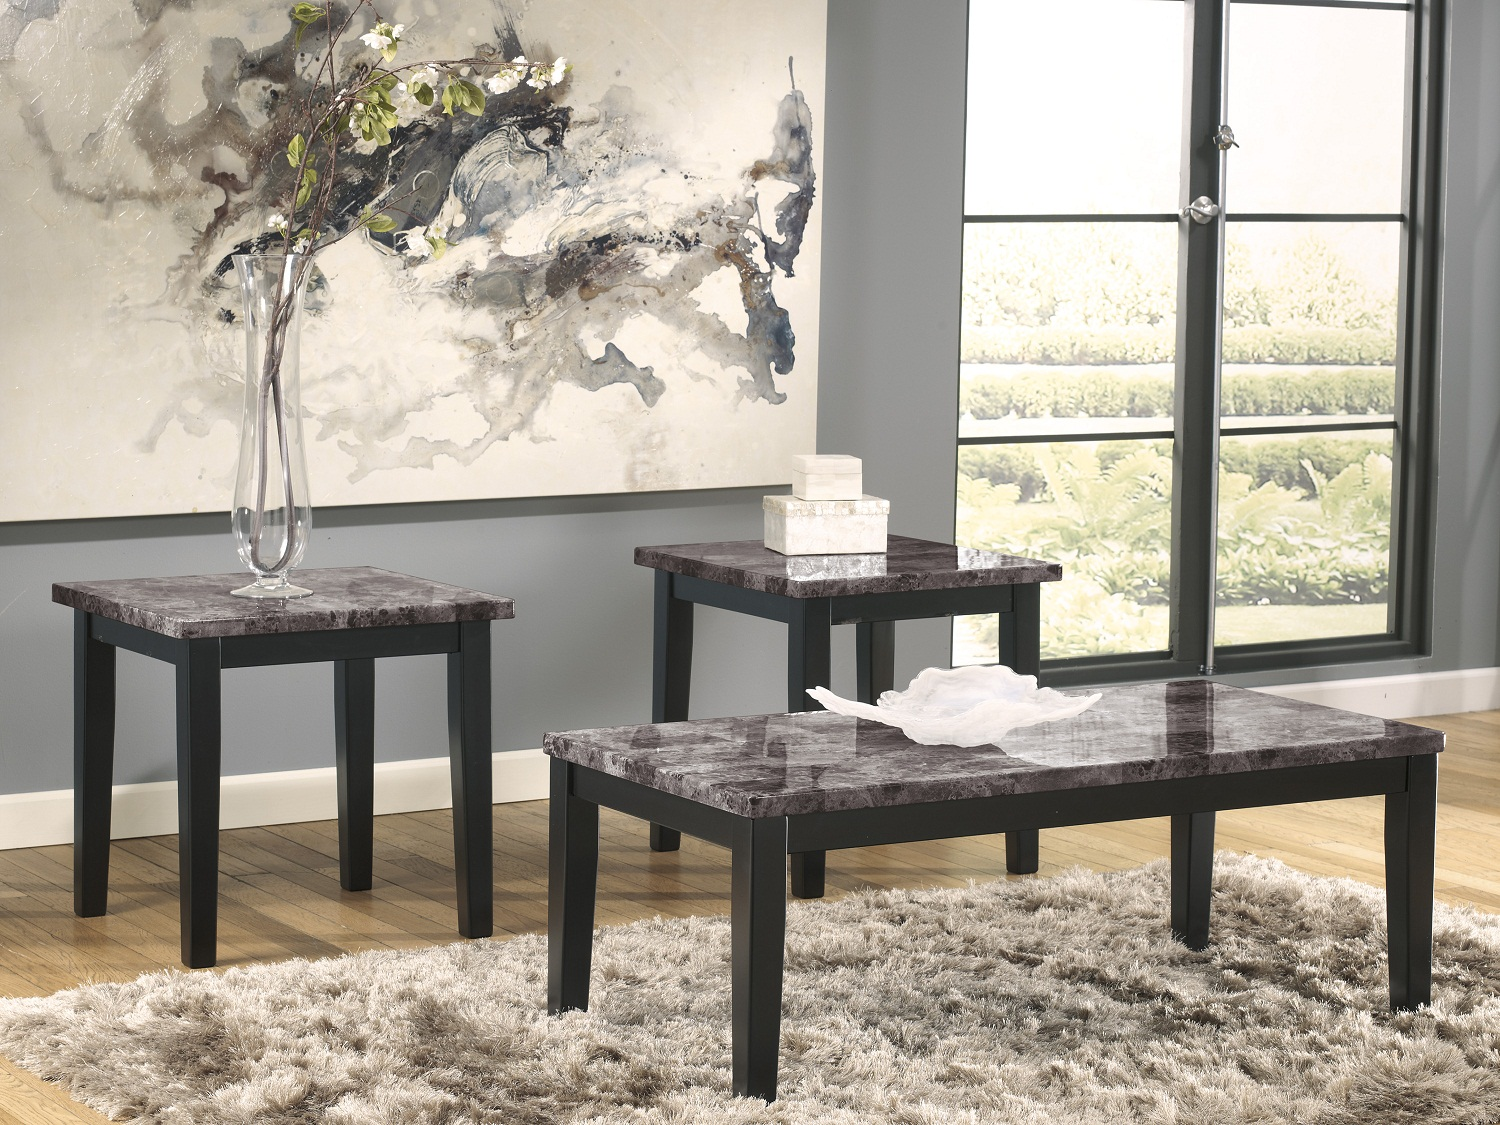 Maysville 3PC Coffee Table Set, T204-13, Coffee Table by Midha Furniture to Brampton, Mississauga, Etobicoke, Toronto, Scraborough, Caledon, Oakville, Markham, Ajax, Pickering, Oshawa, Richmondhill, Kitchener, Hamilton and GTA area